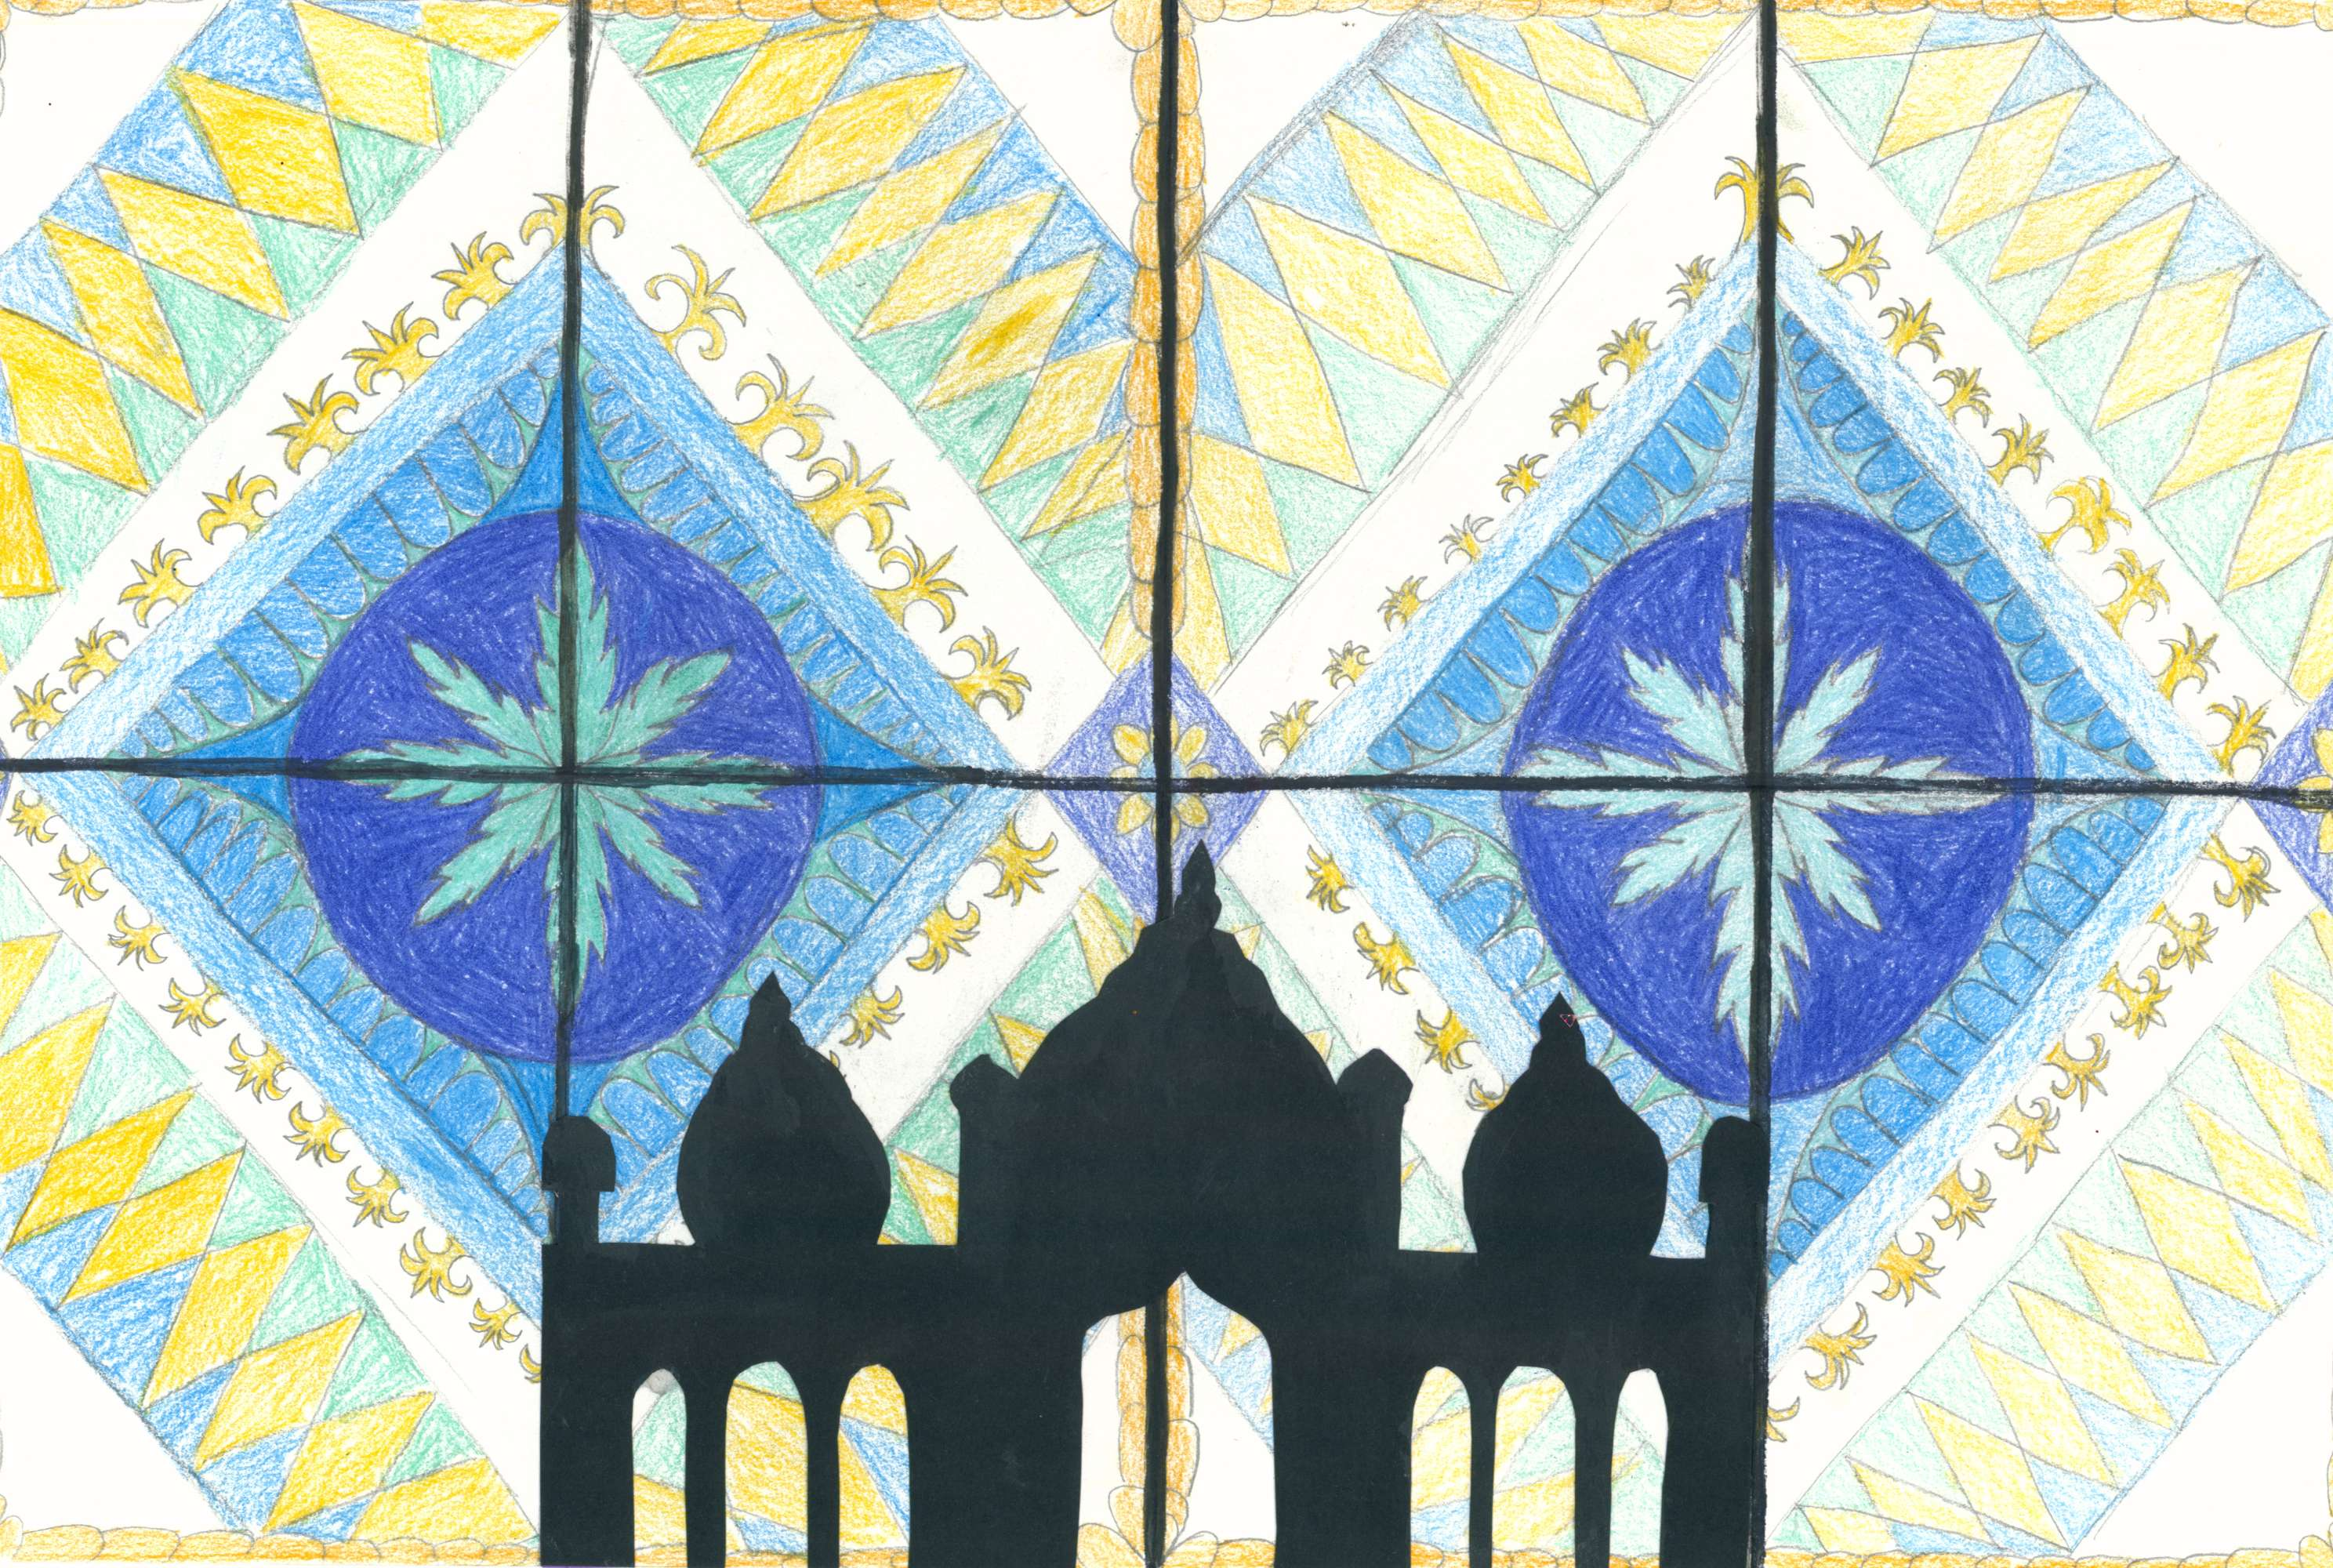 Inspired by the Blue Mosque